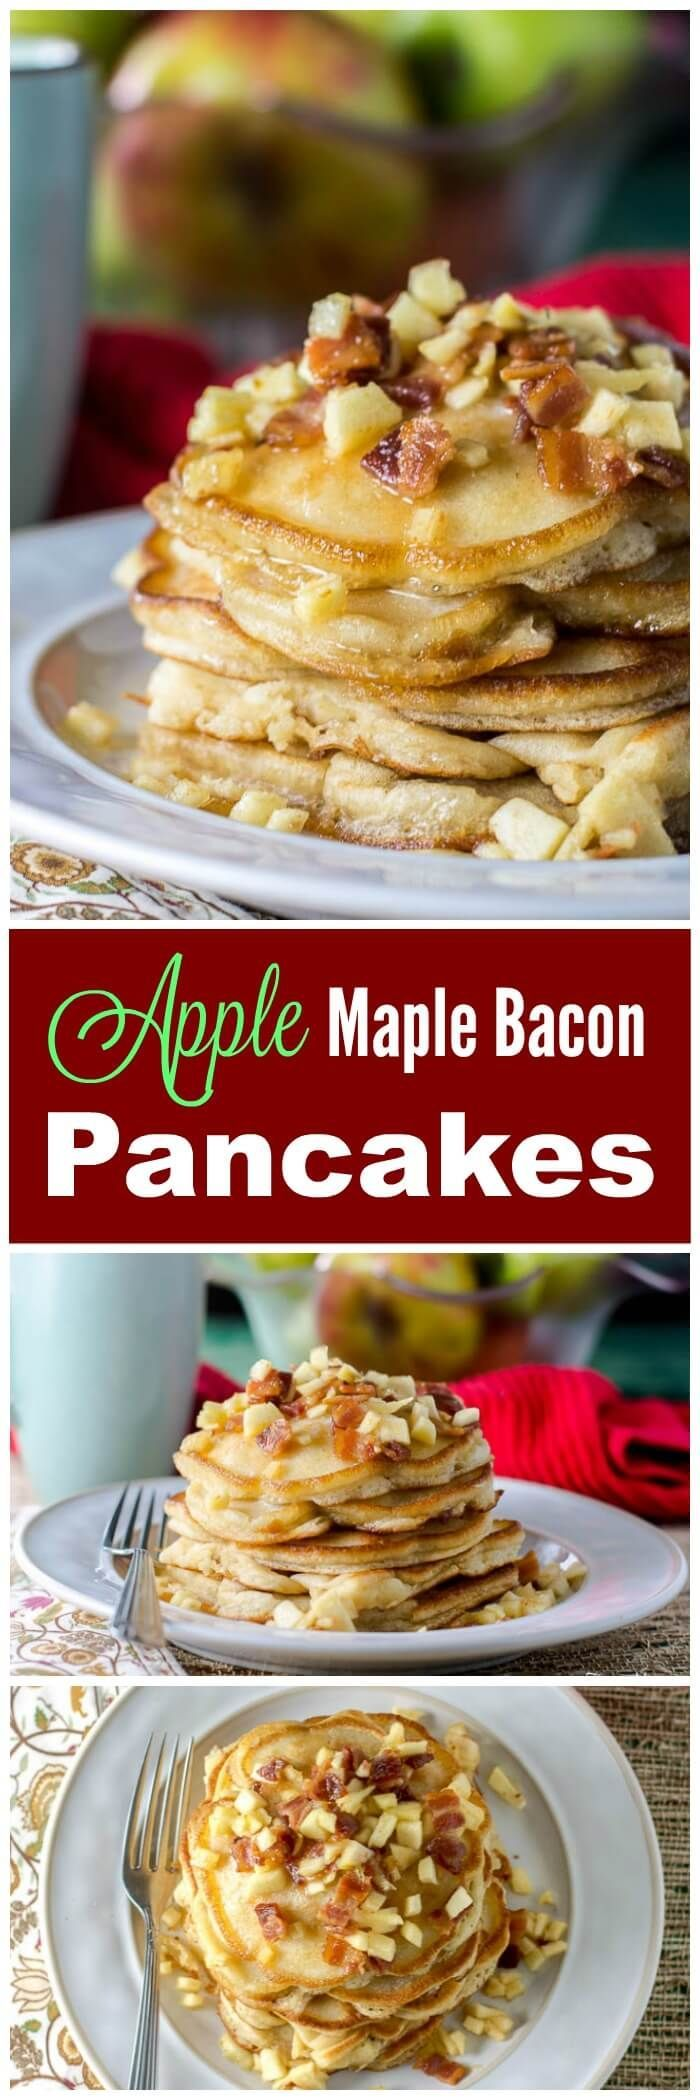 Apple Maple Bacon Pancakes combine apples, bacon, pancakes and maple syrup for an incredibly delicious breakfast that is perfect for a Fall weekend.